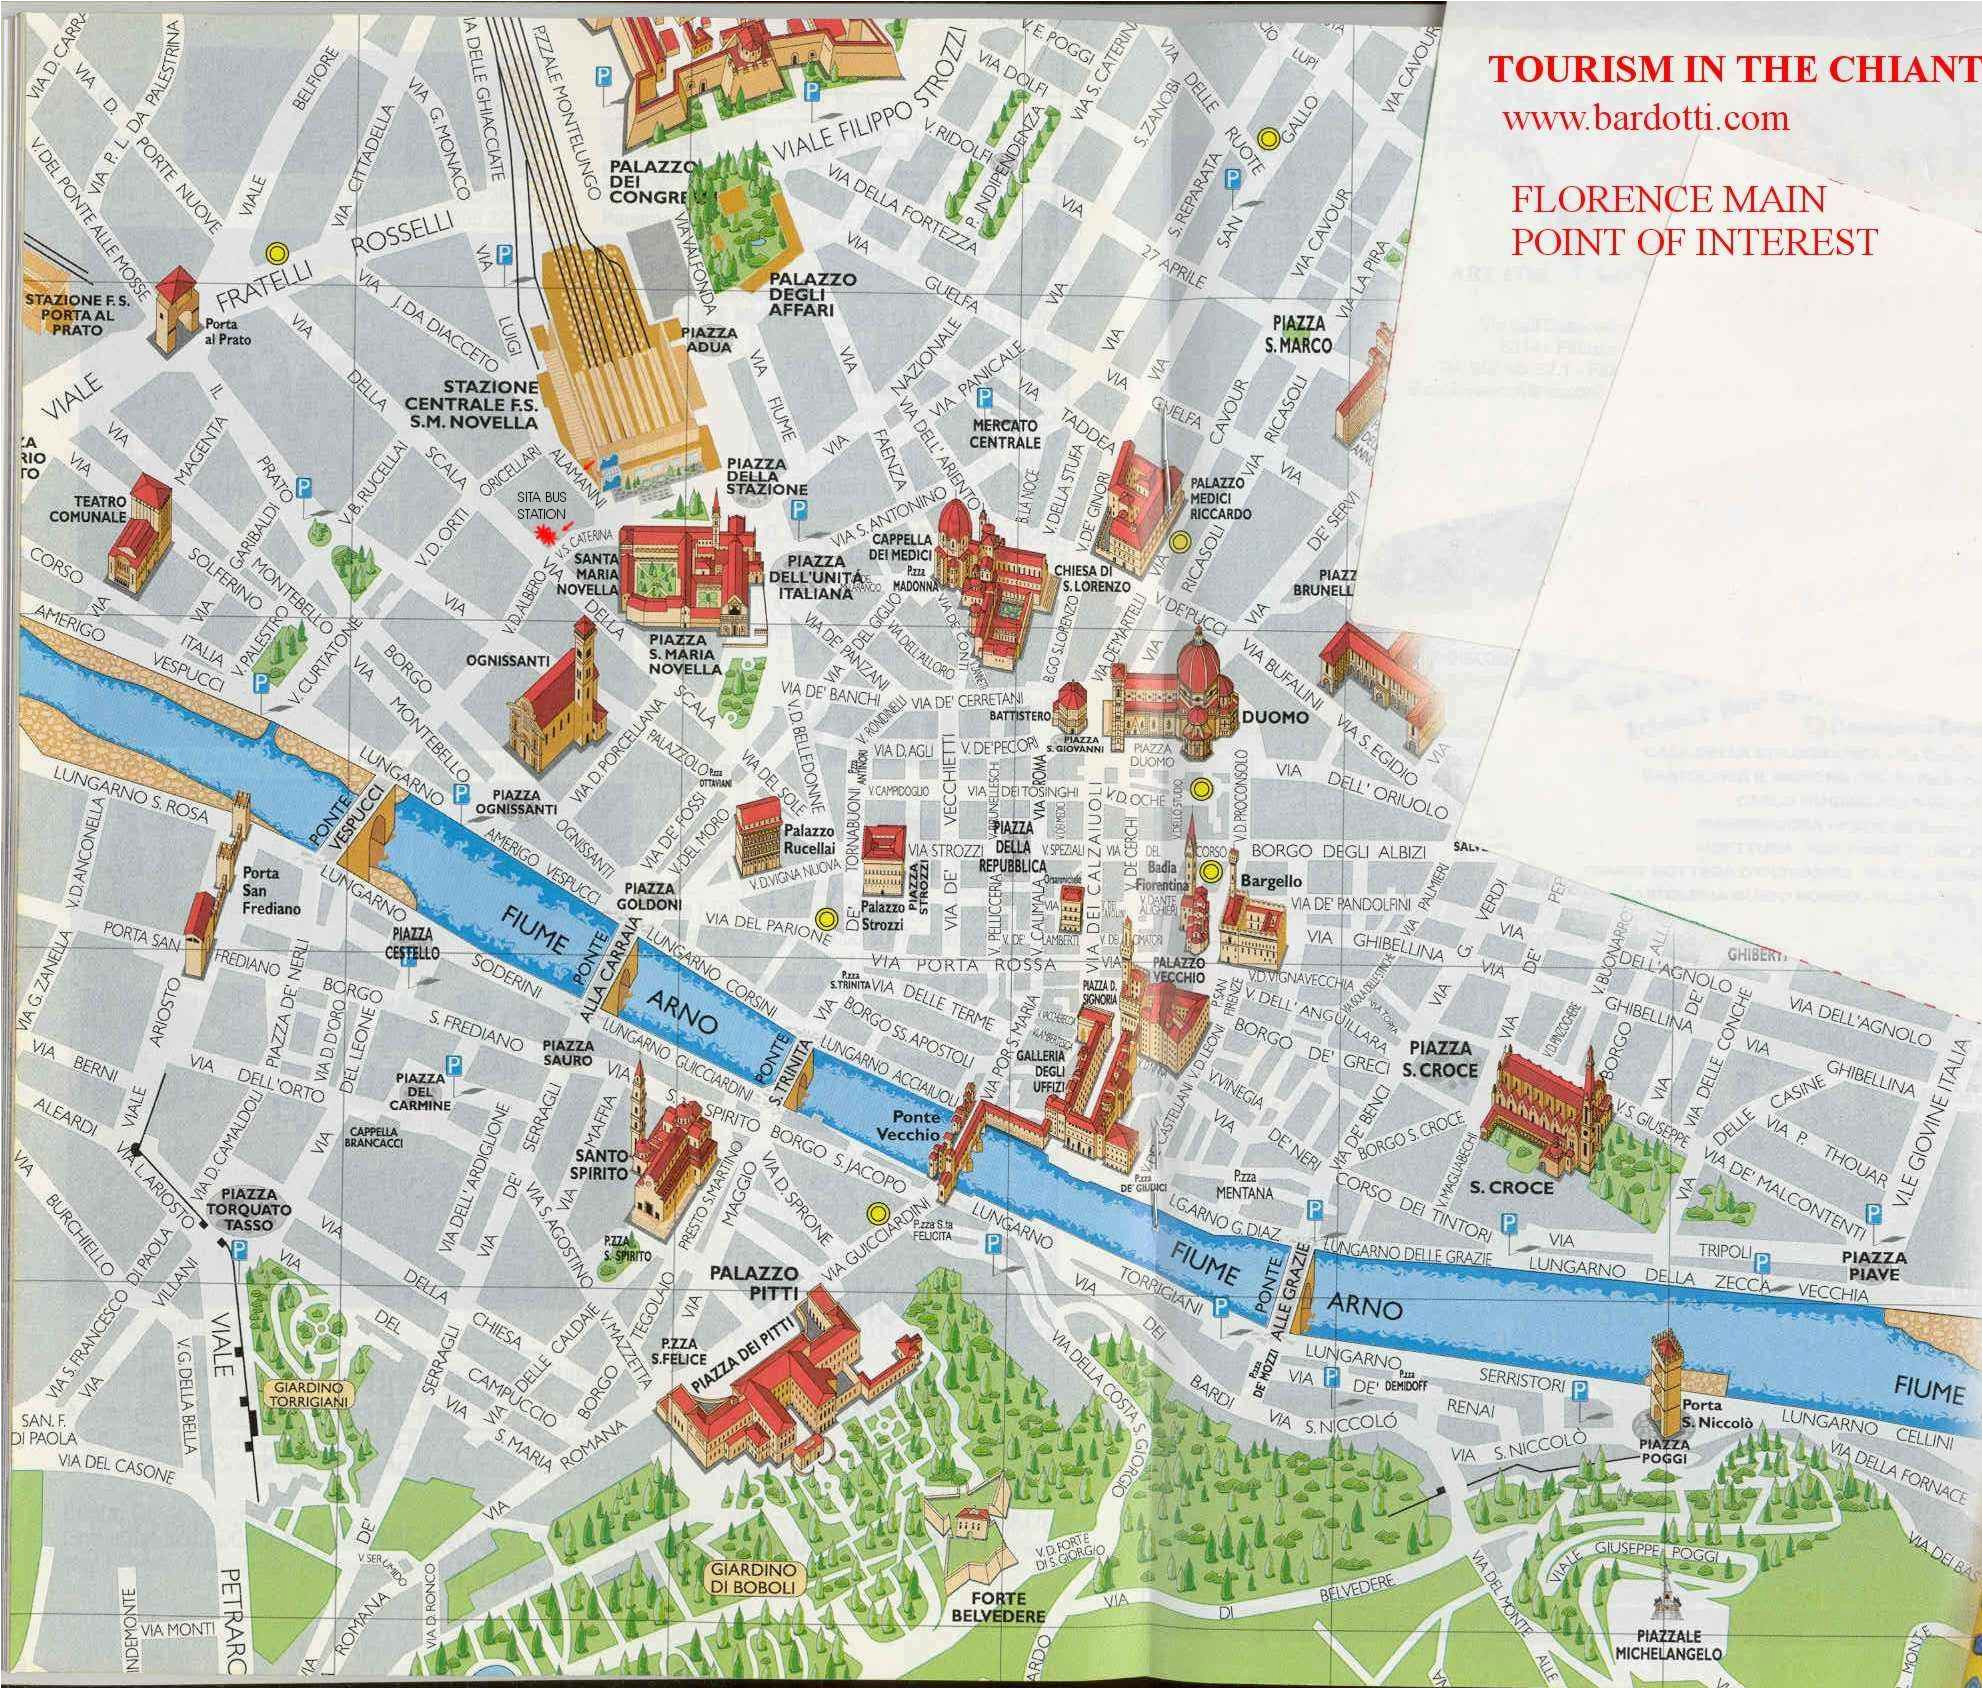 Florence Italy Tourist Map Tourism In The Chianti Guide To